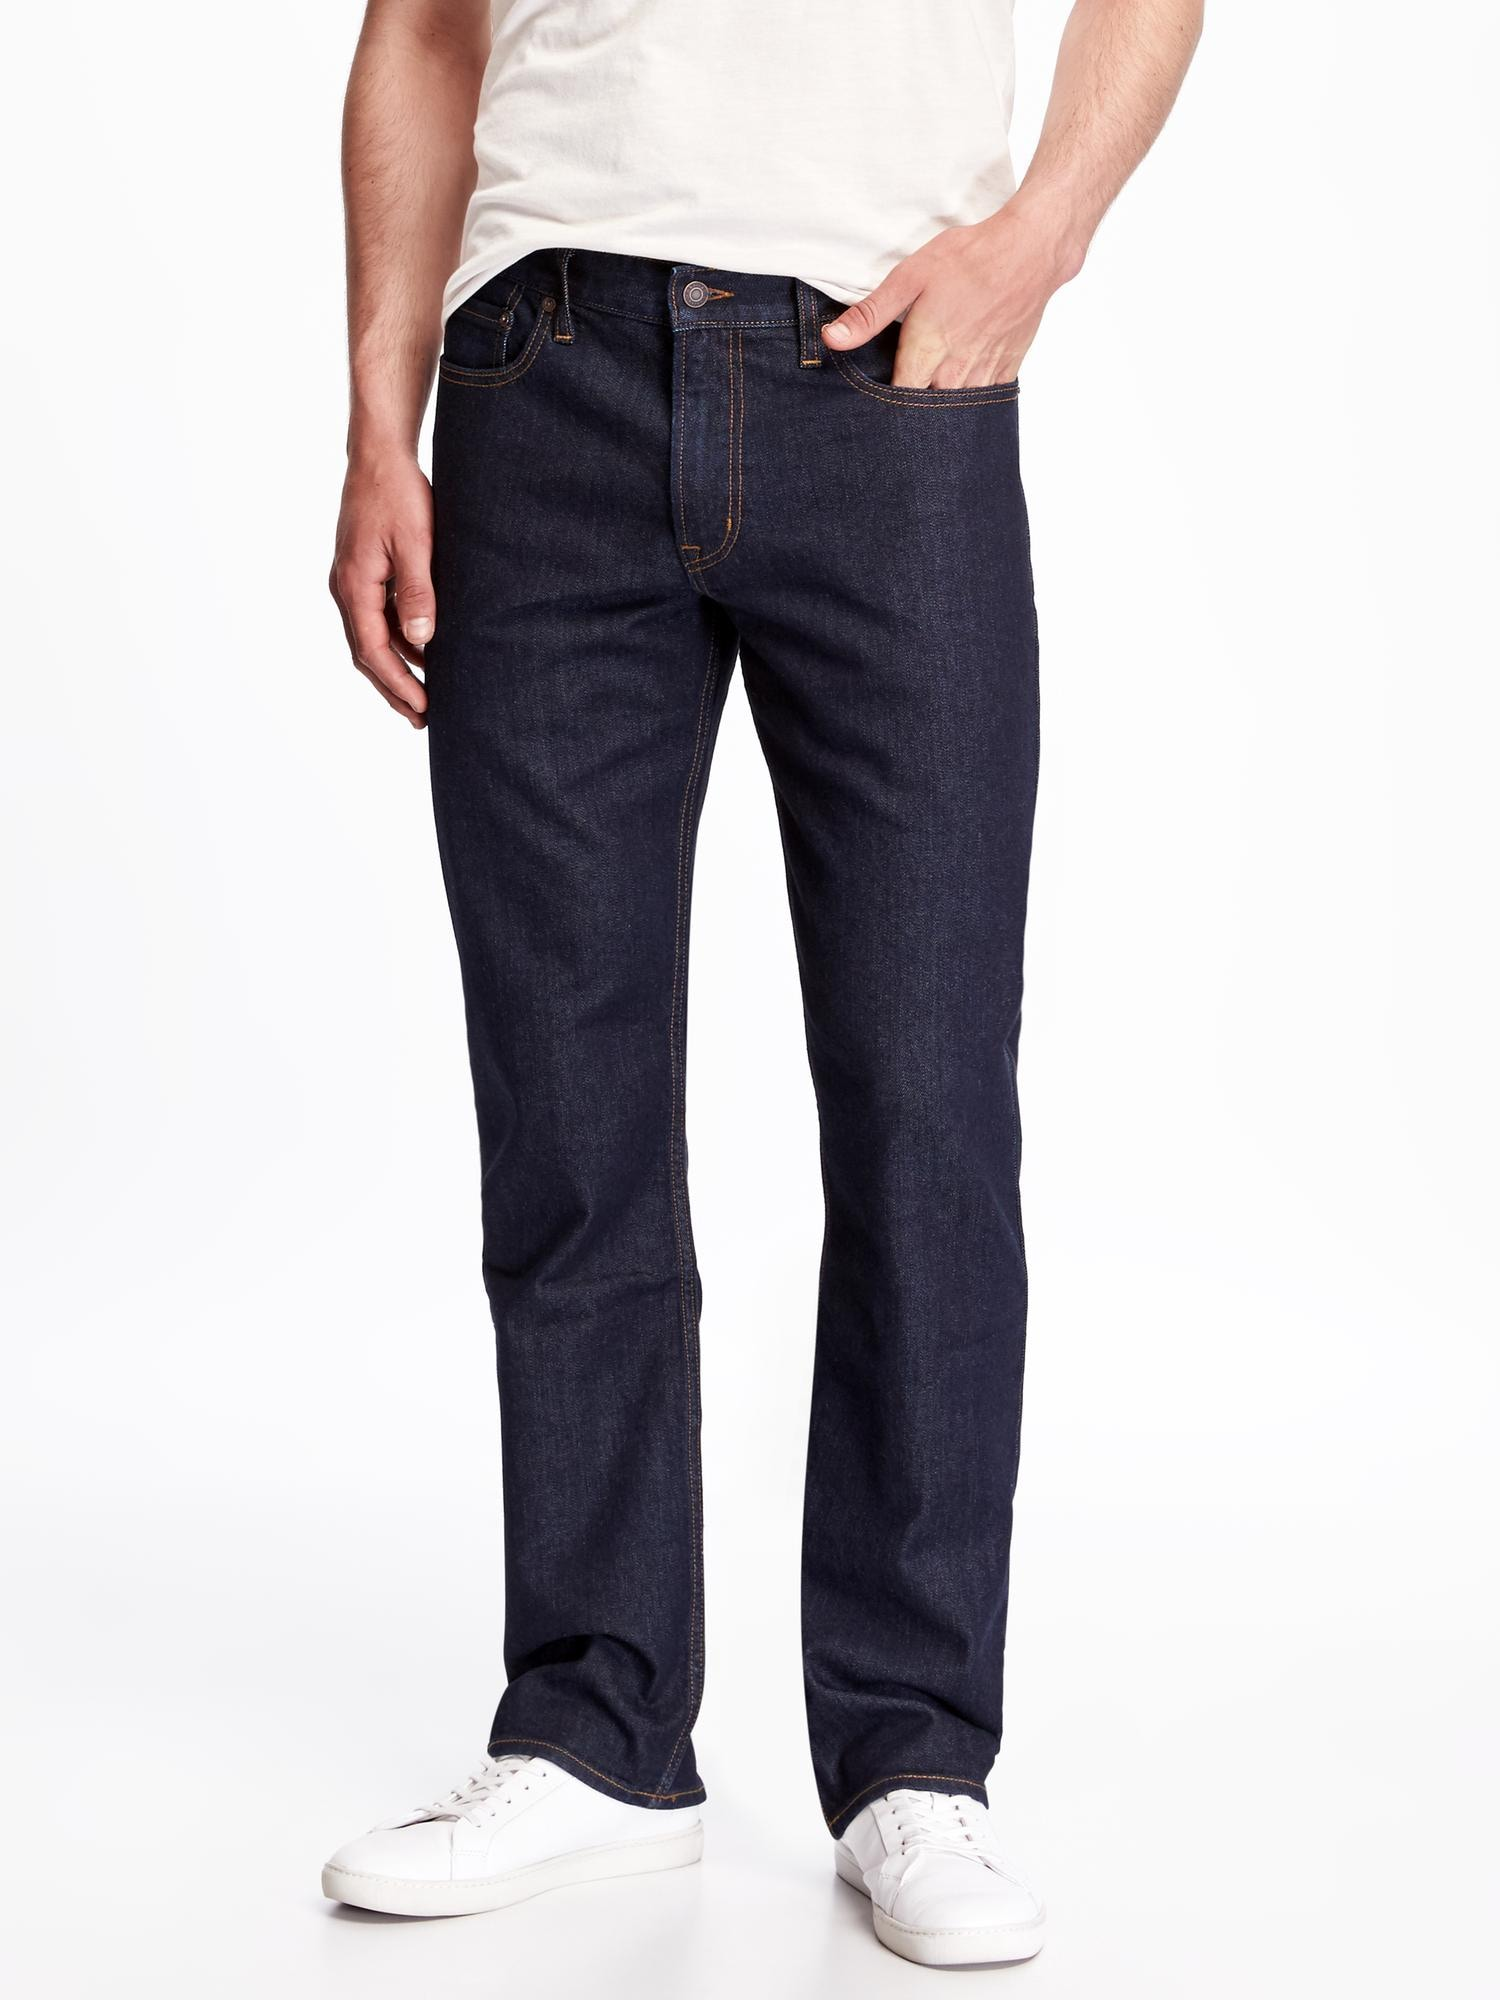 Old Navy Straight Built-In Flex Jeans For Men